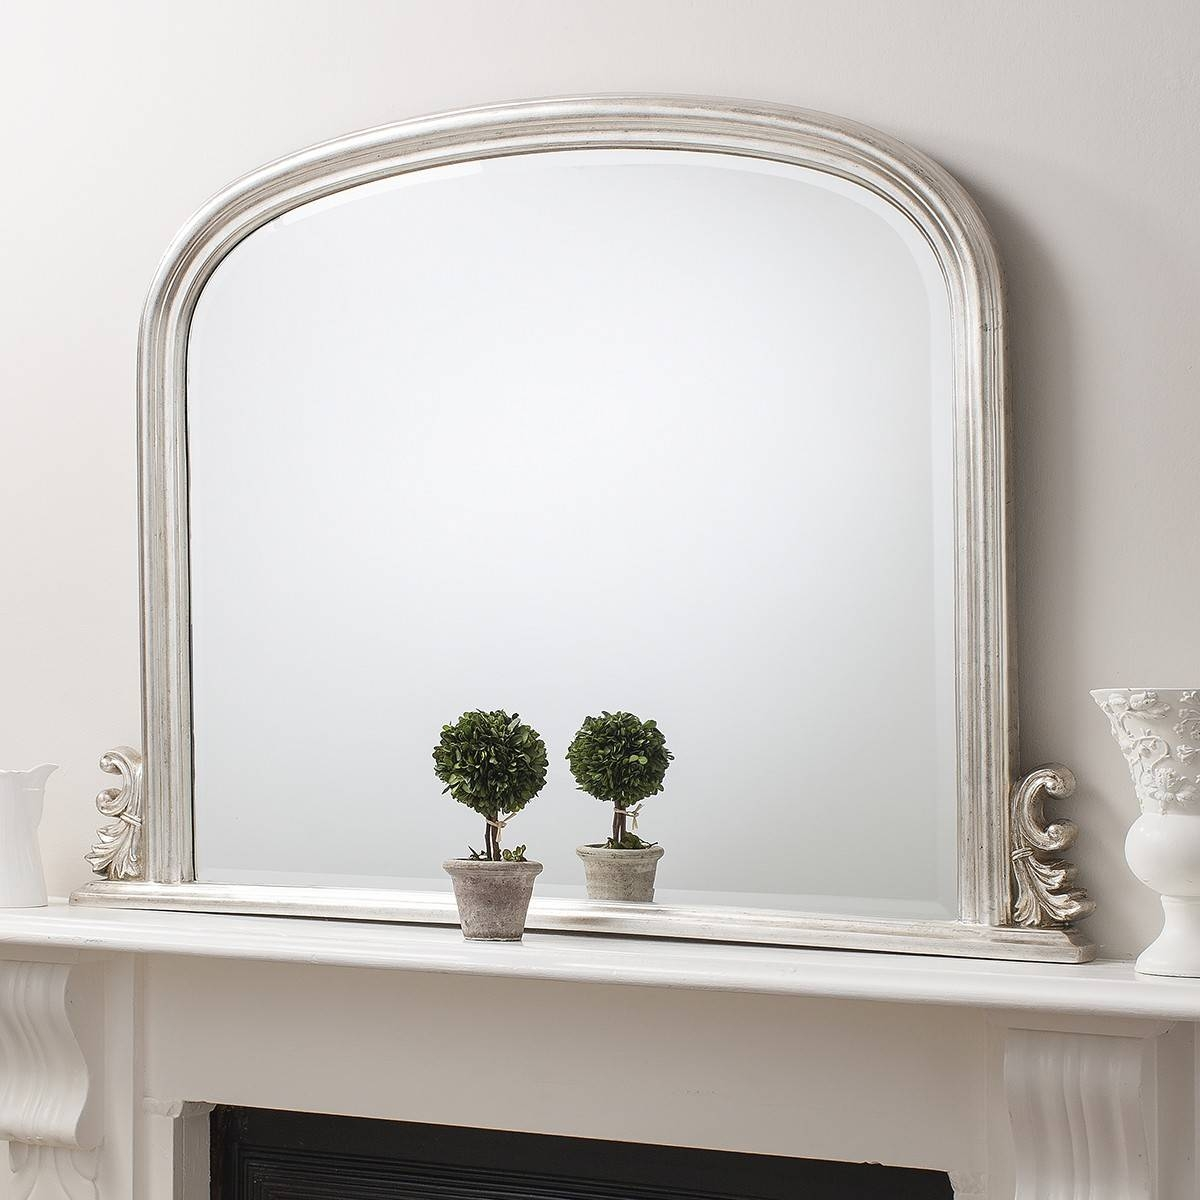 Mirror : Wonderful White Overmantle Mirror Mirror Outlet Has The With Regard To Over Mantel Mirrors (View 11 of 15)